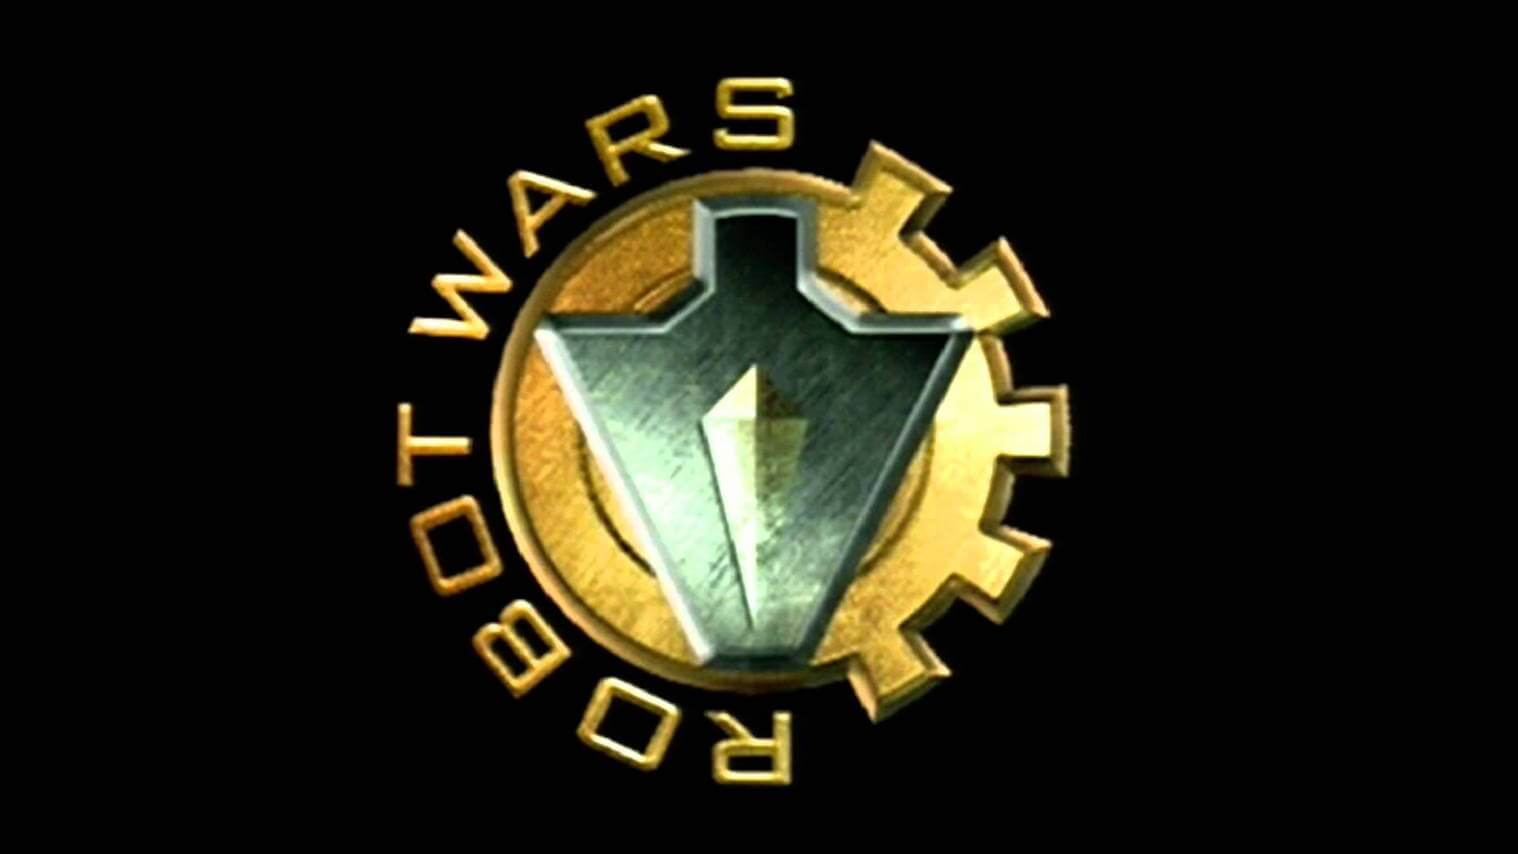 Robot Wars rebooted by BBC 2, new series to start in 2016